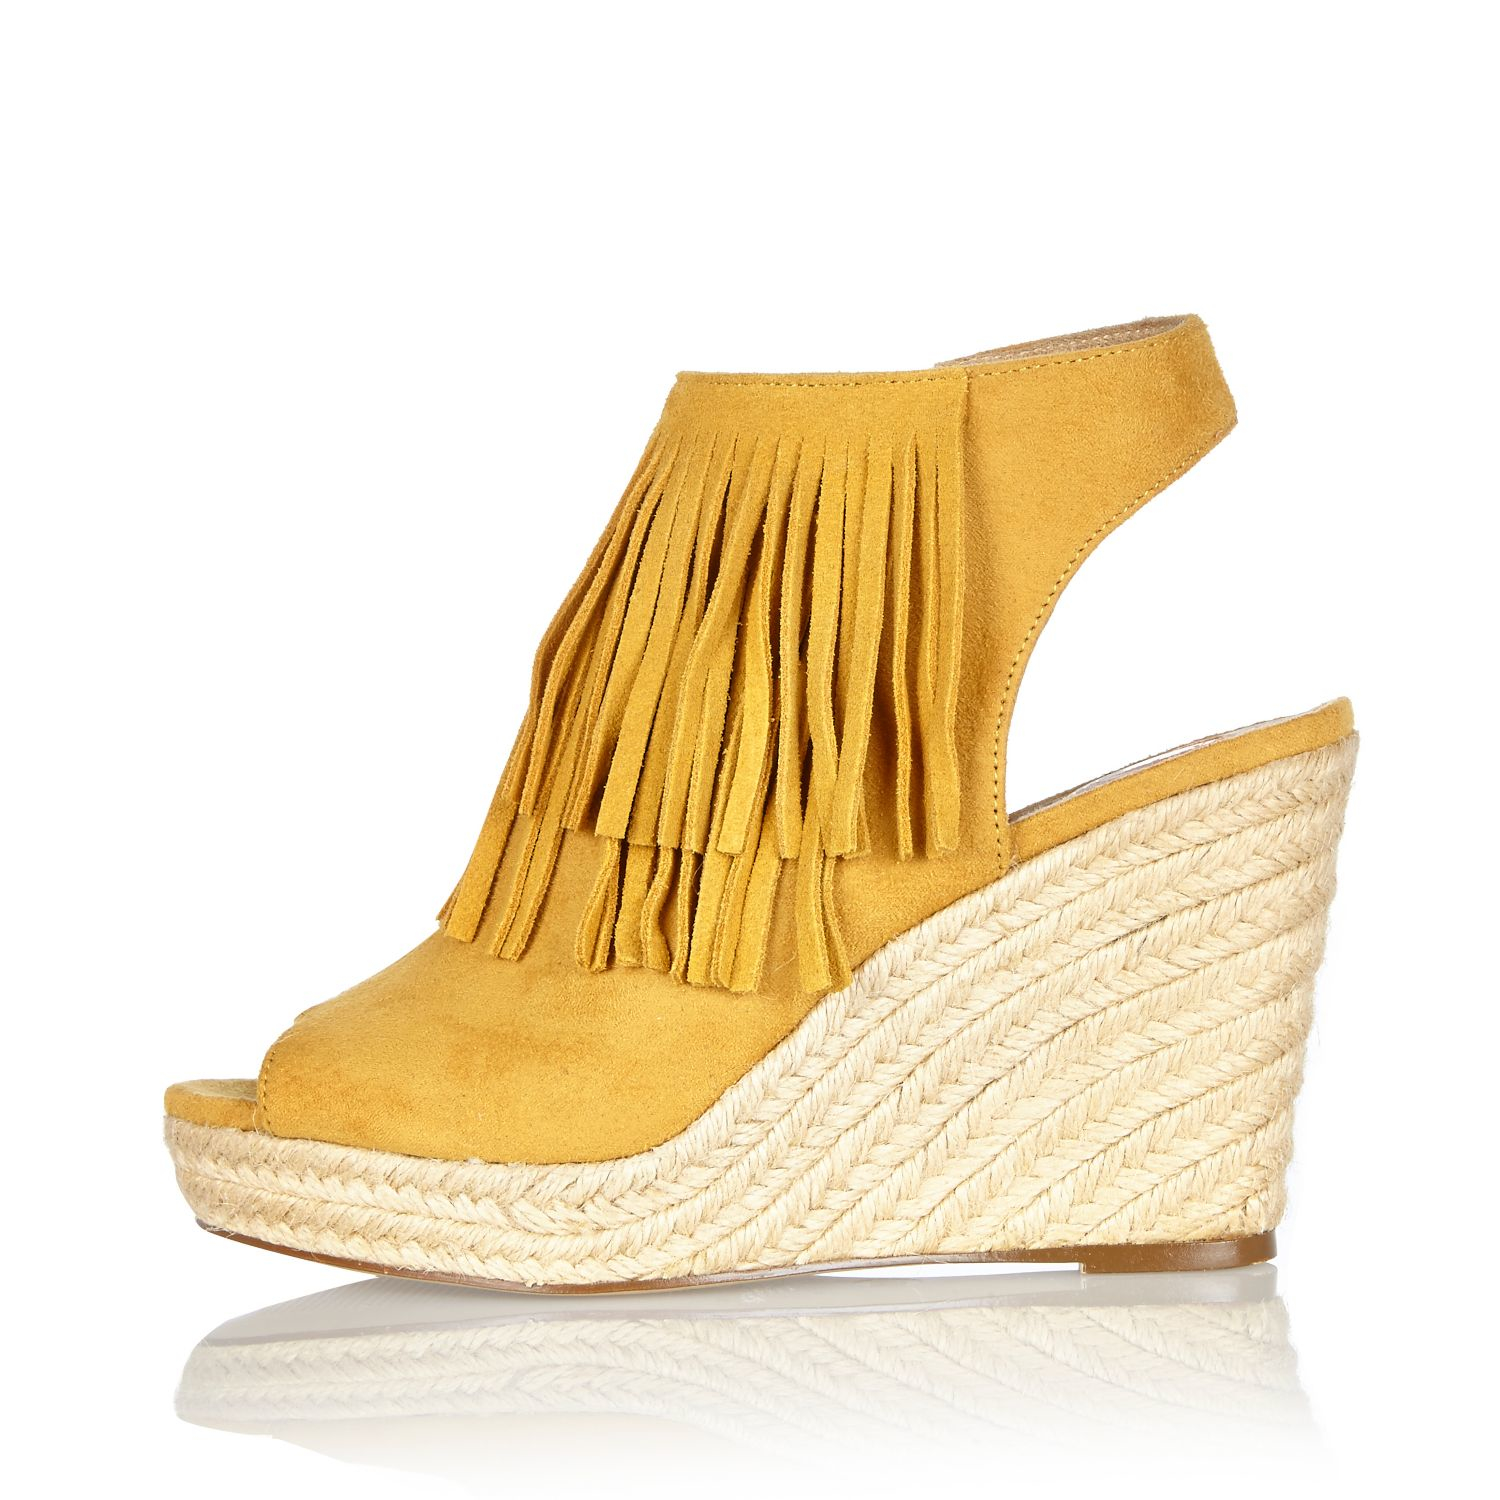 41680a866c53 Lyst - River Island Yellow Fringed Slingback Wedges in Yellow